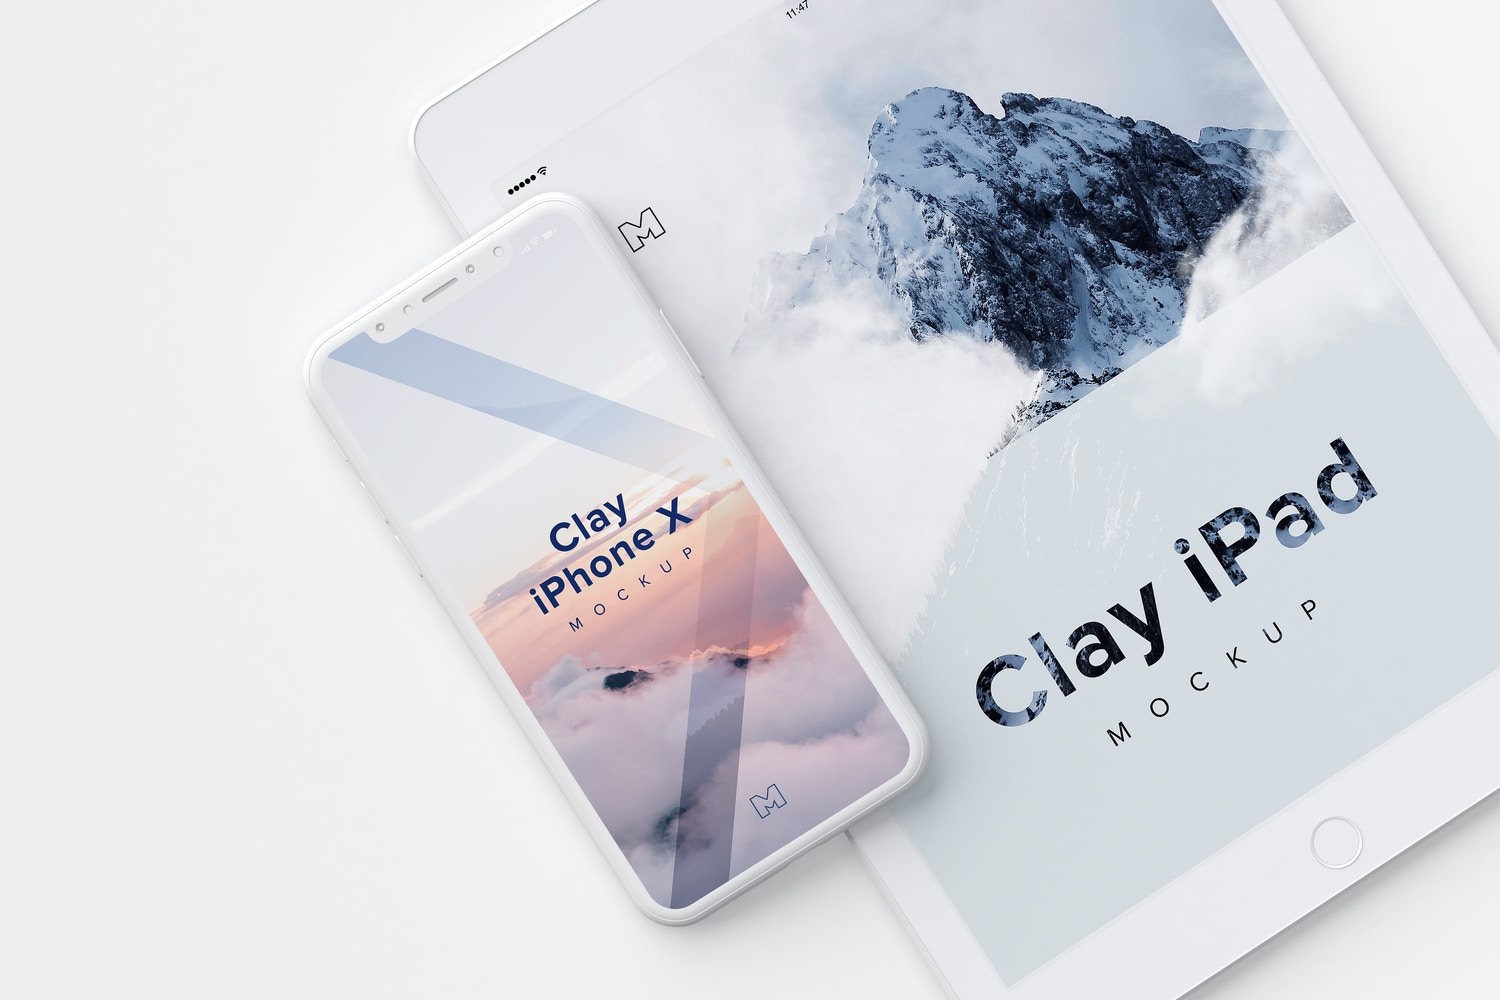 Clay iPhone X and iPad Mockup 01 by Original Mockups on Original Mockups